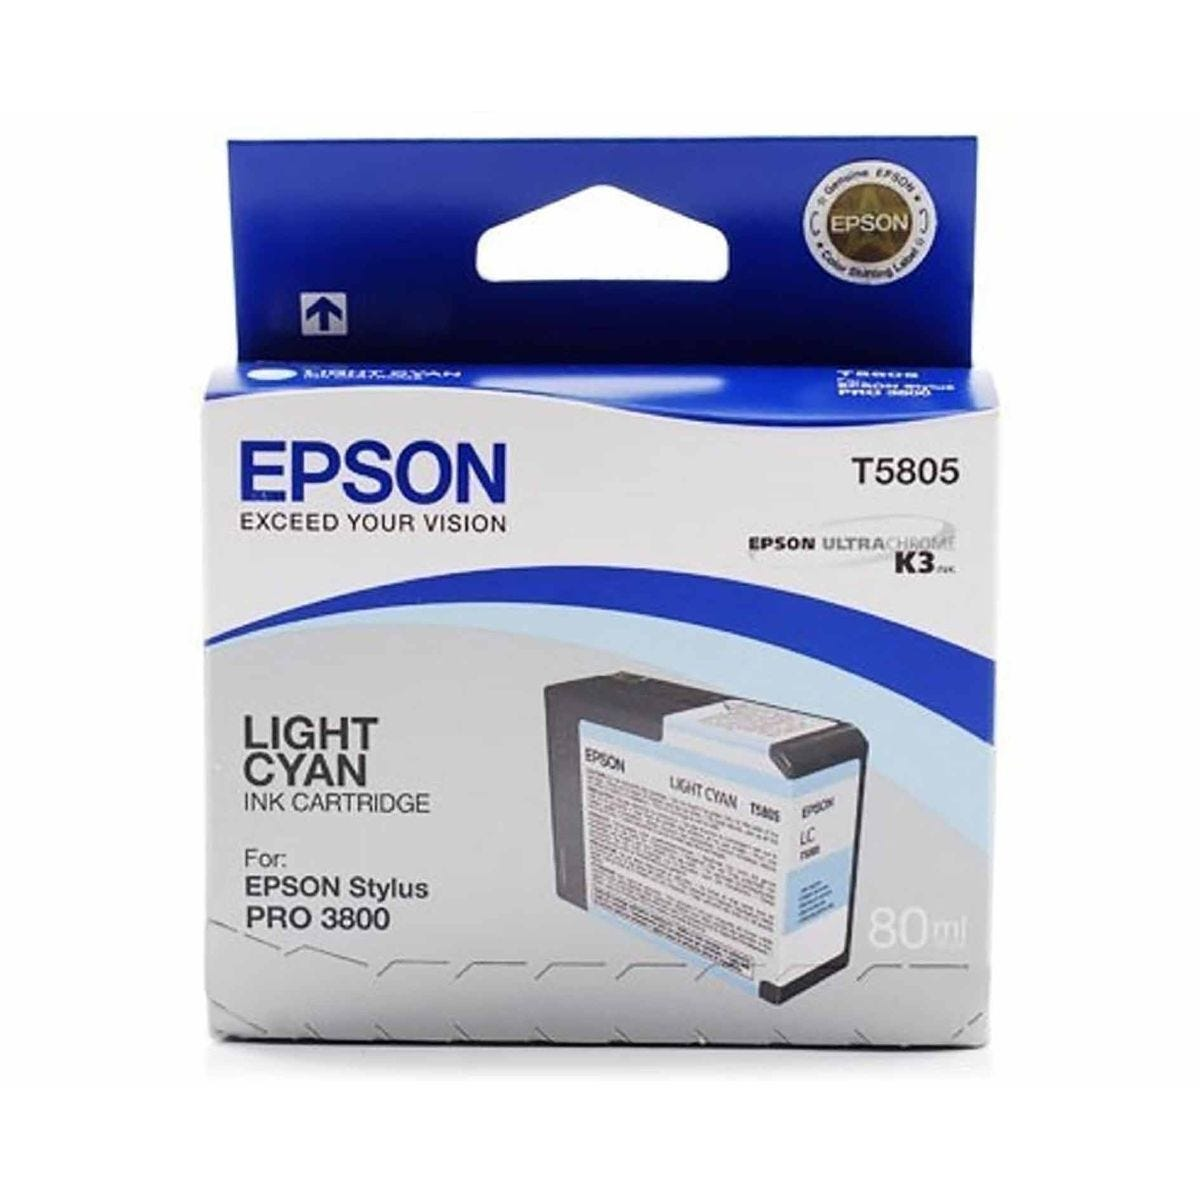 Epson PrO3800 Ink Light Cyan